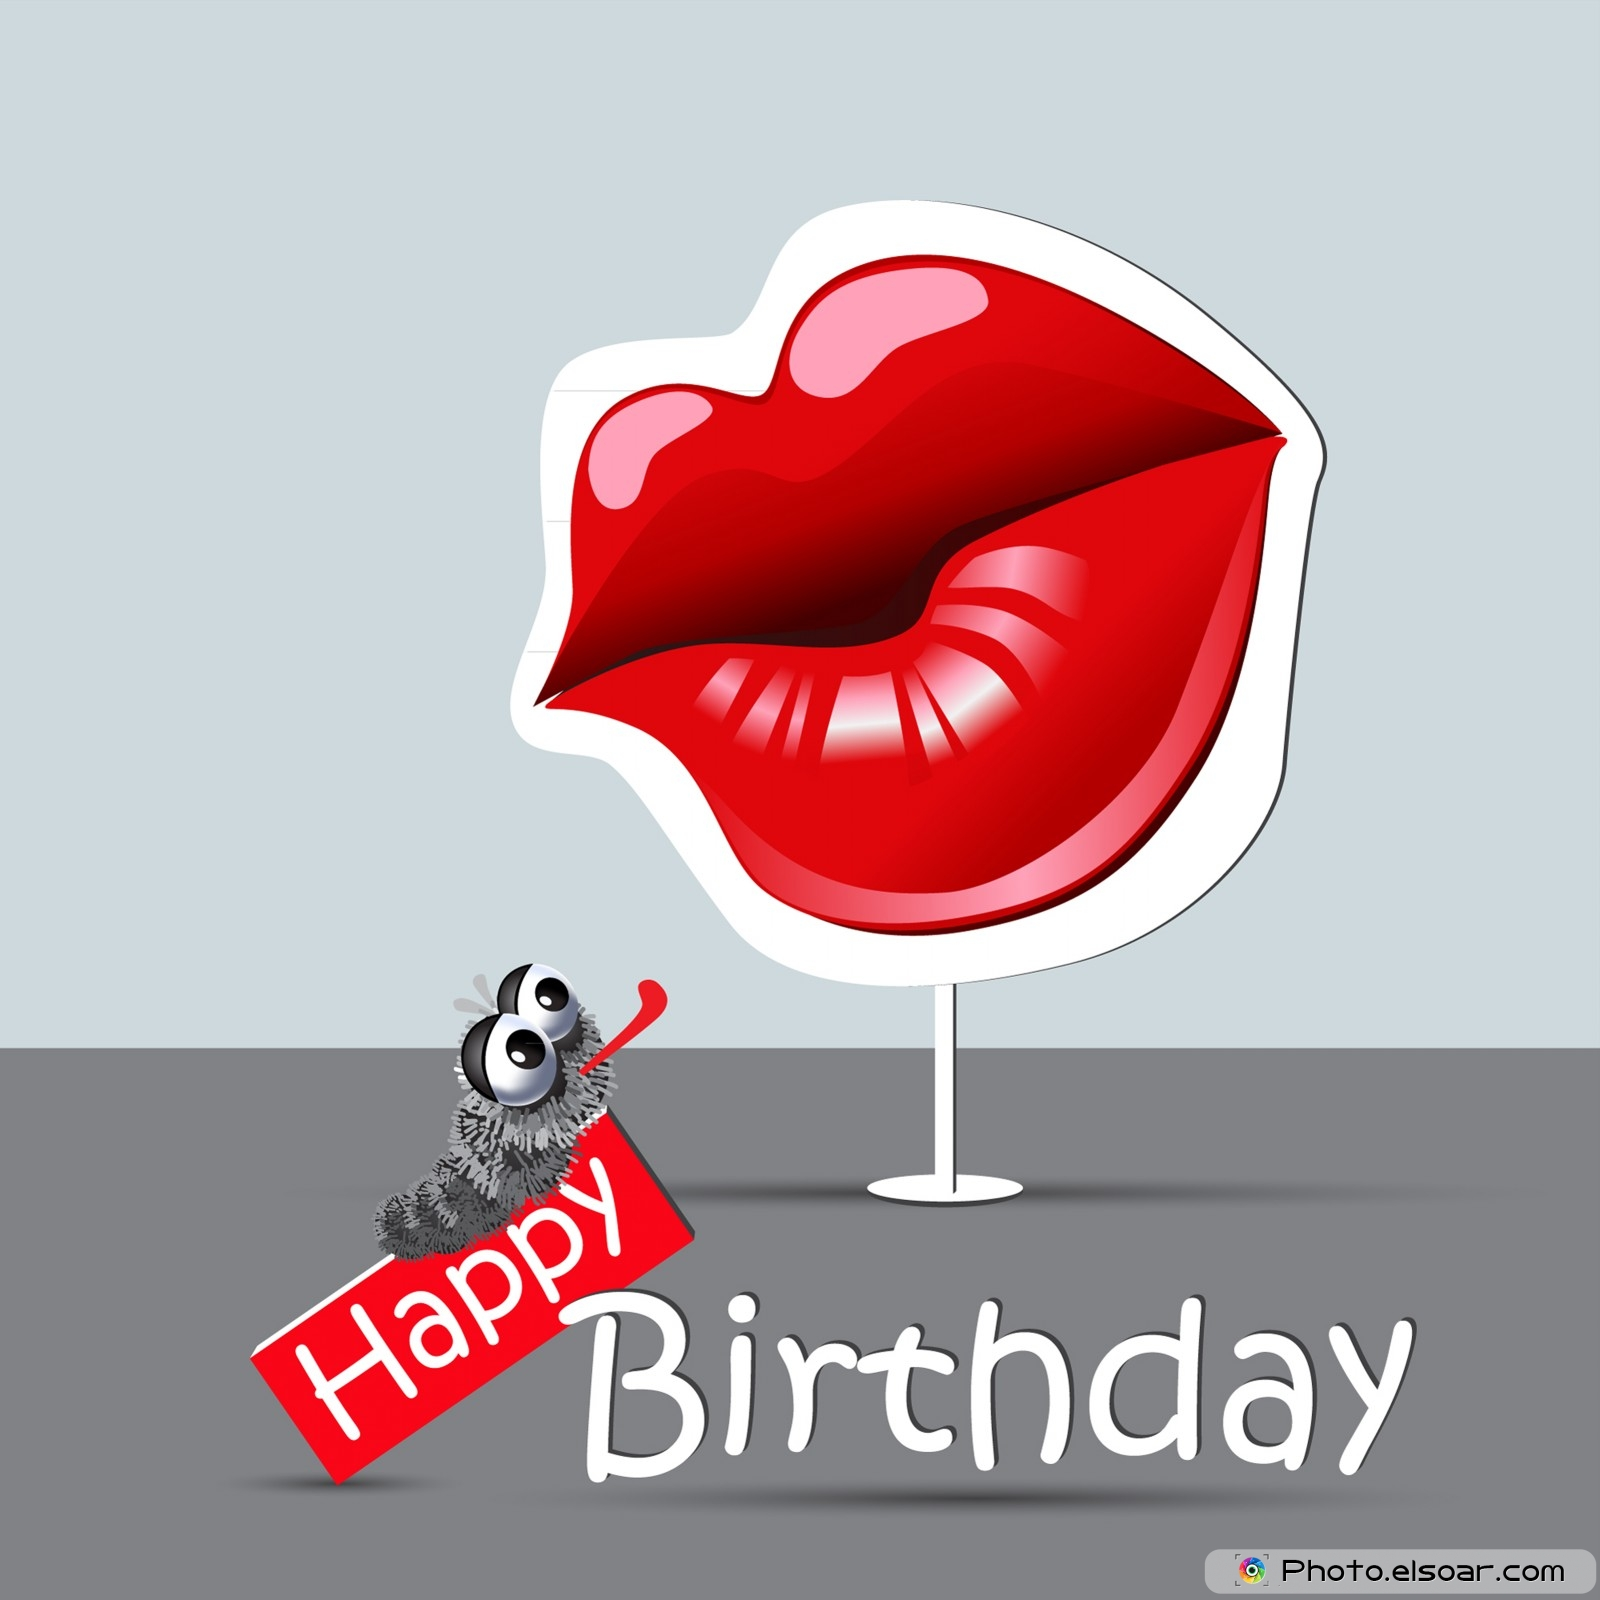 funny happy birthday wallpaper ; happy-birthday-funny-card-eyes-and-smile-kiss-wallpaper